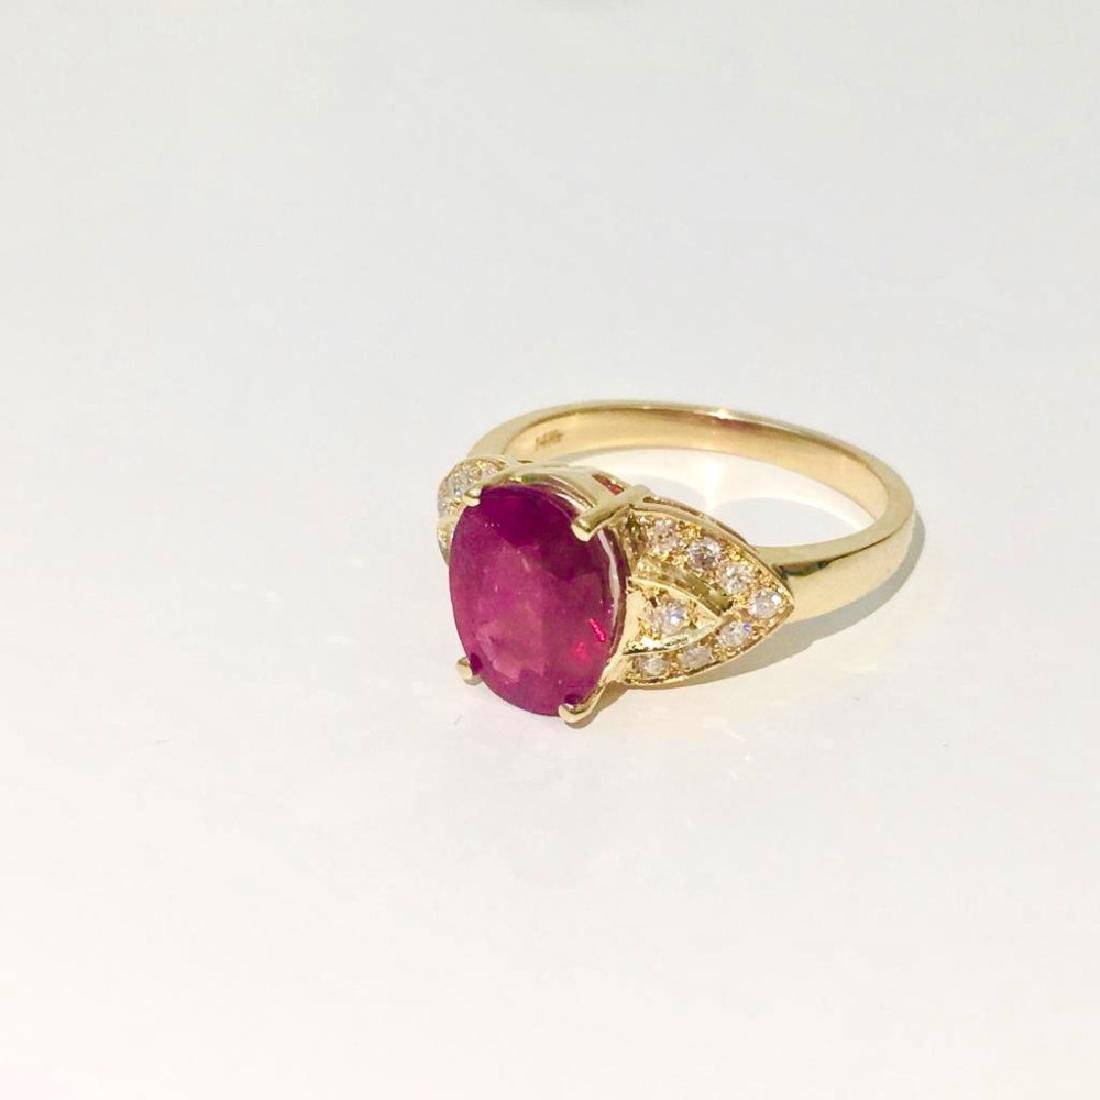 14K Gold, 4.50 CT Ruby and Diamond Ring - 4